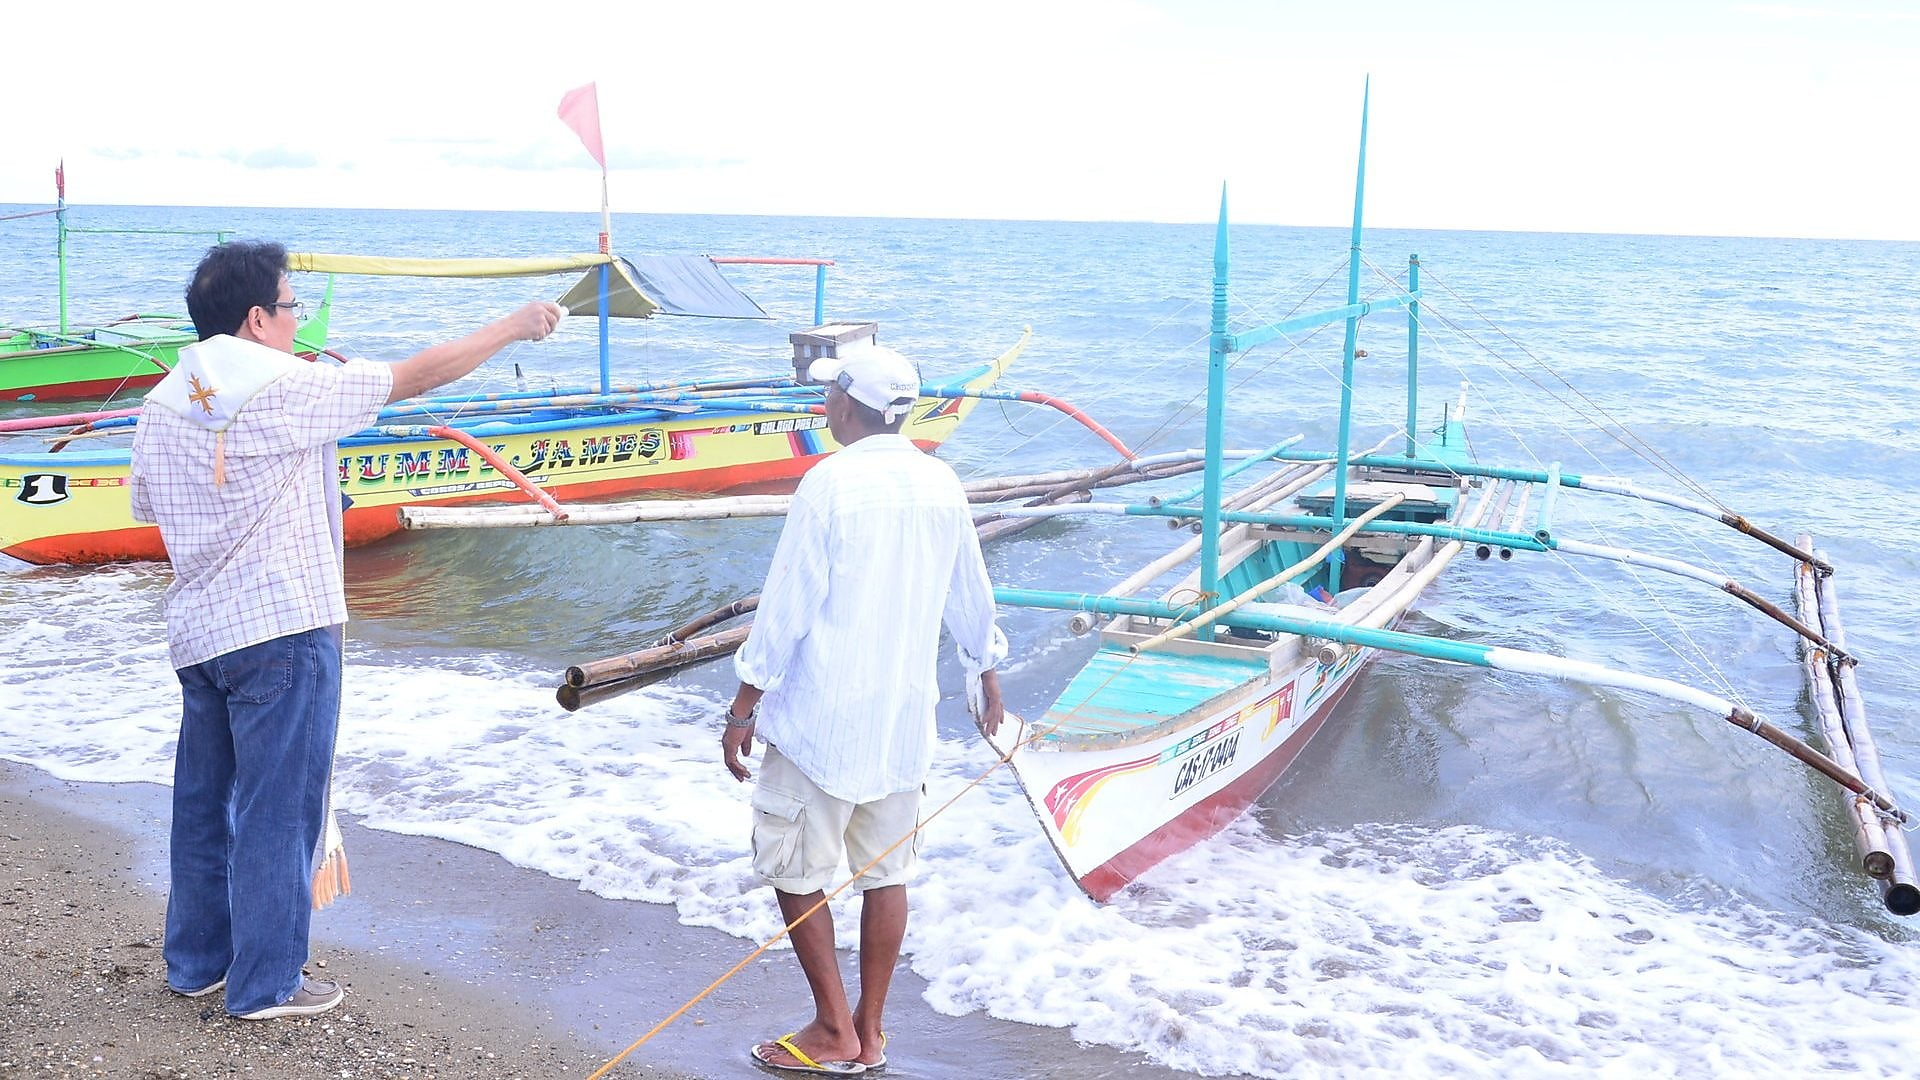 A priest blessing the boats of the fishermen beneficiaries alt-text: A priest blessing boats of beneficiaires